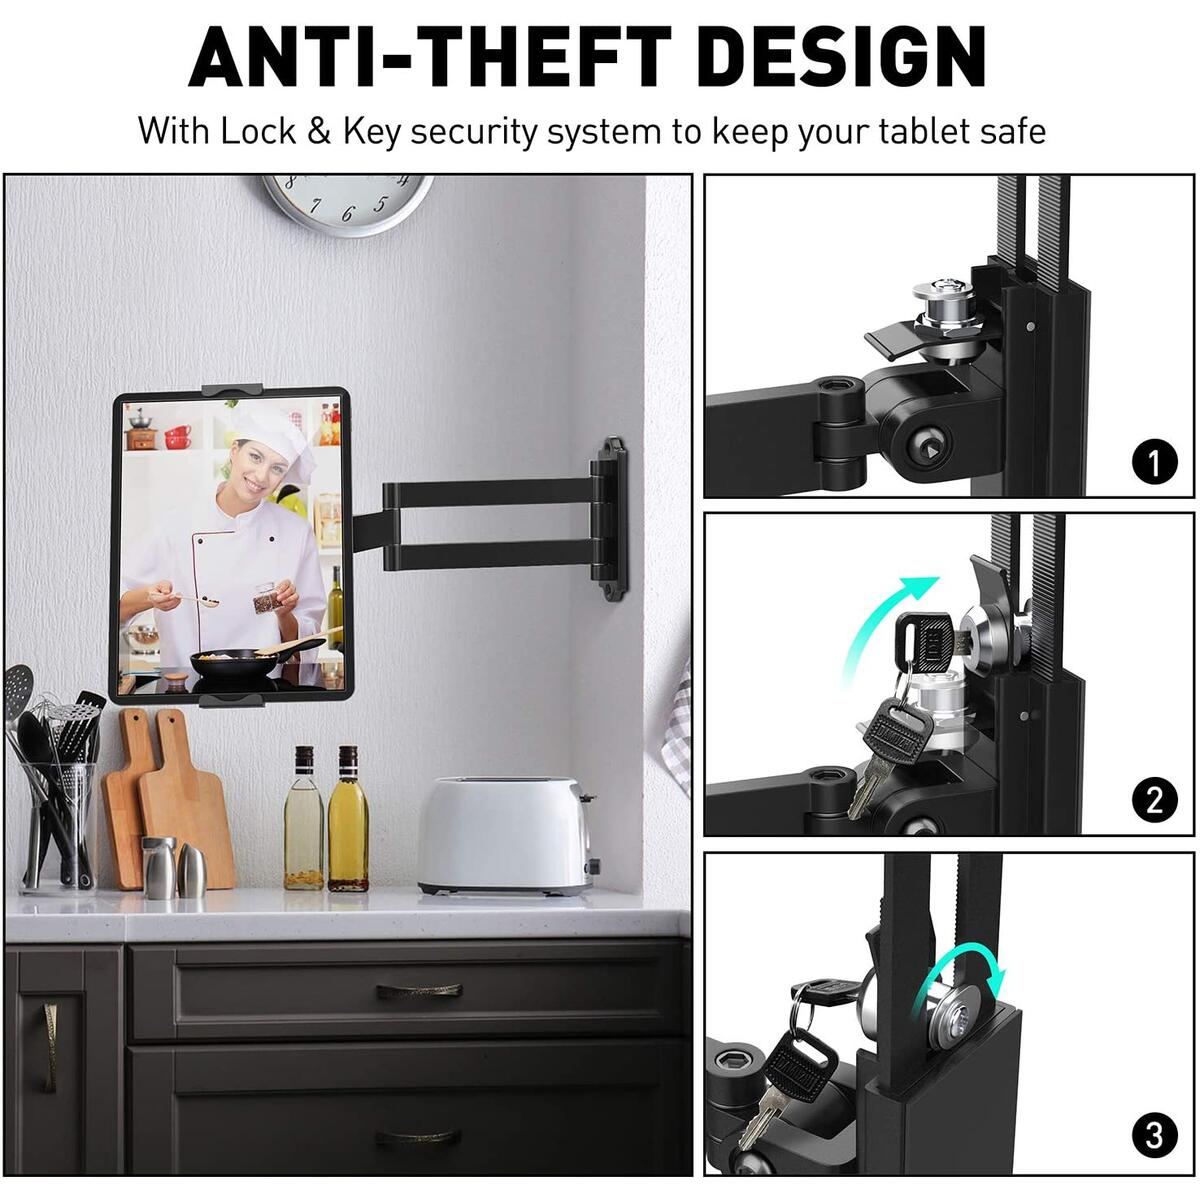 AboveTEK Tablet Wall Mount - Fits 7 to 11 Inch Tablets Including iPad, Galaxy Tab, Slate, Fire and More -Anti Theft Security Lock and Key - Adjustable Long Arm Articulating Swivel Holder